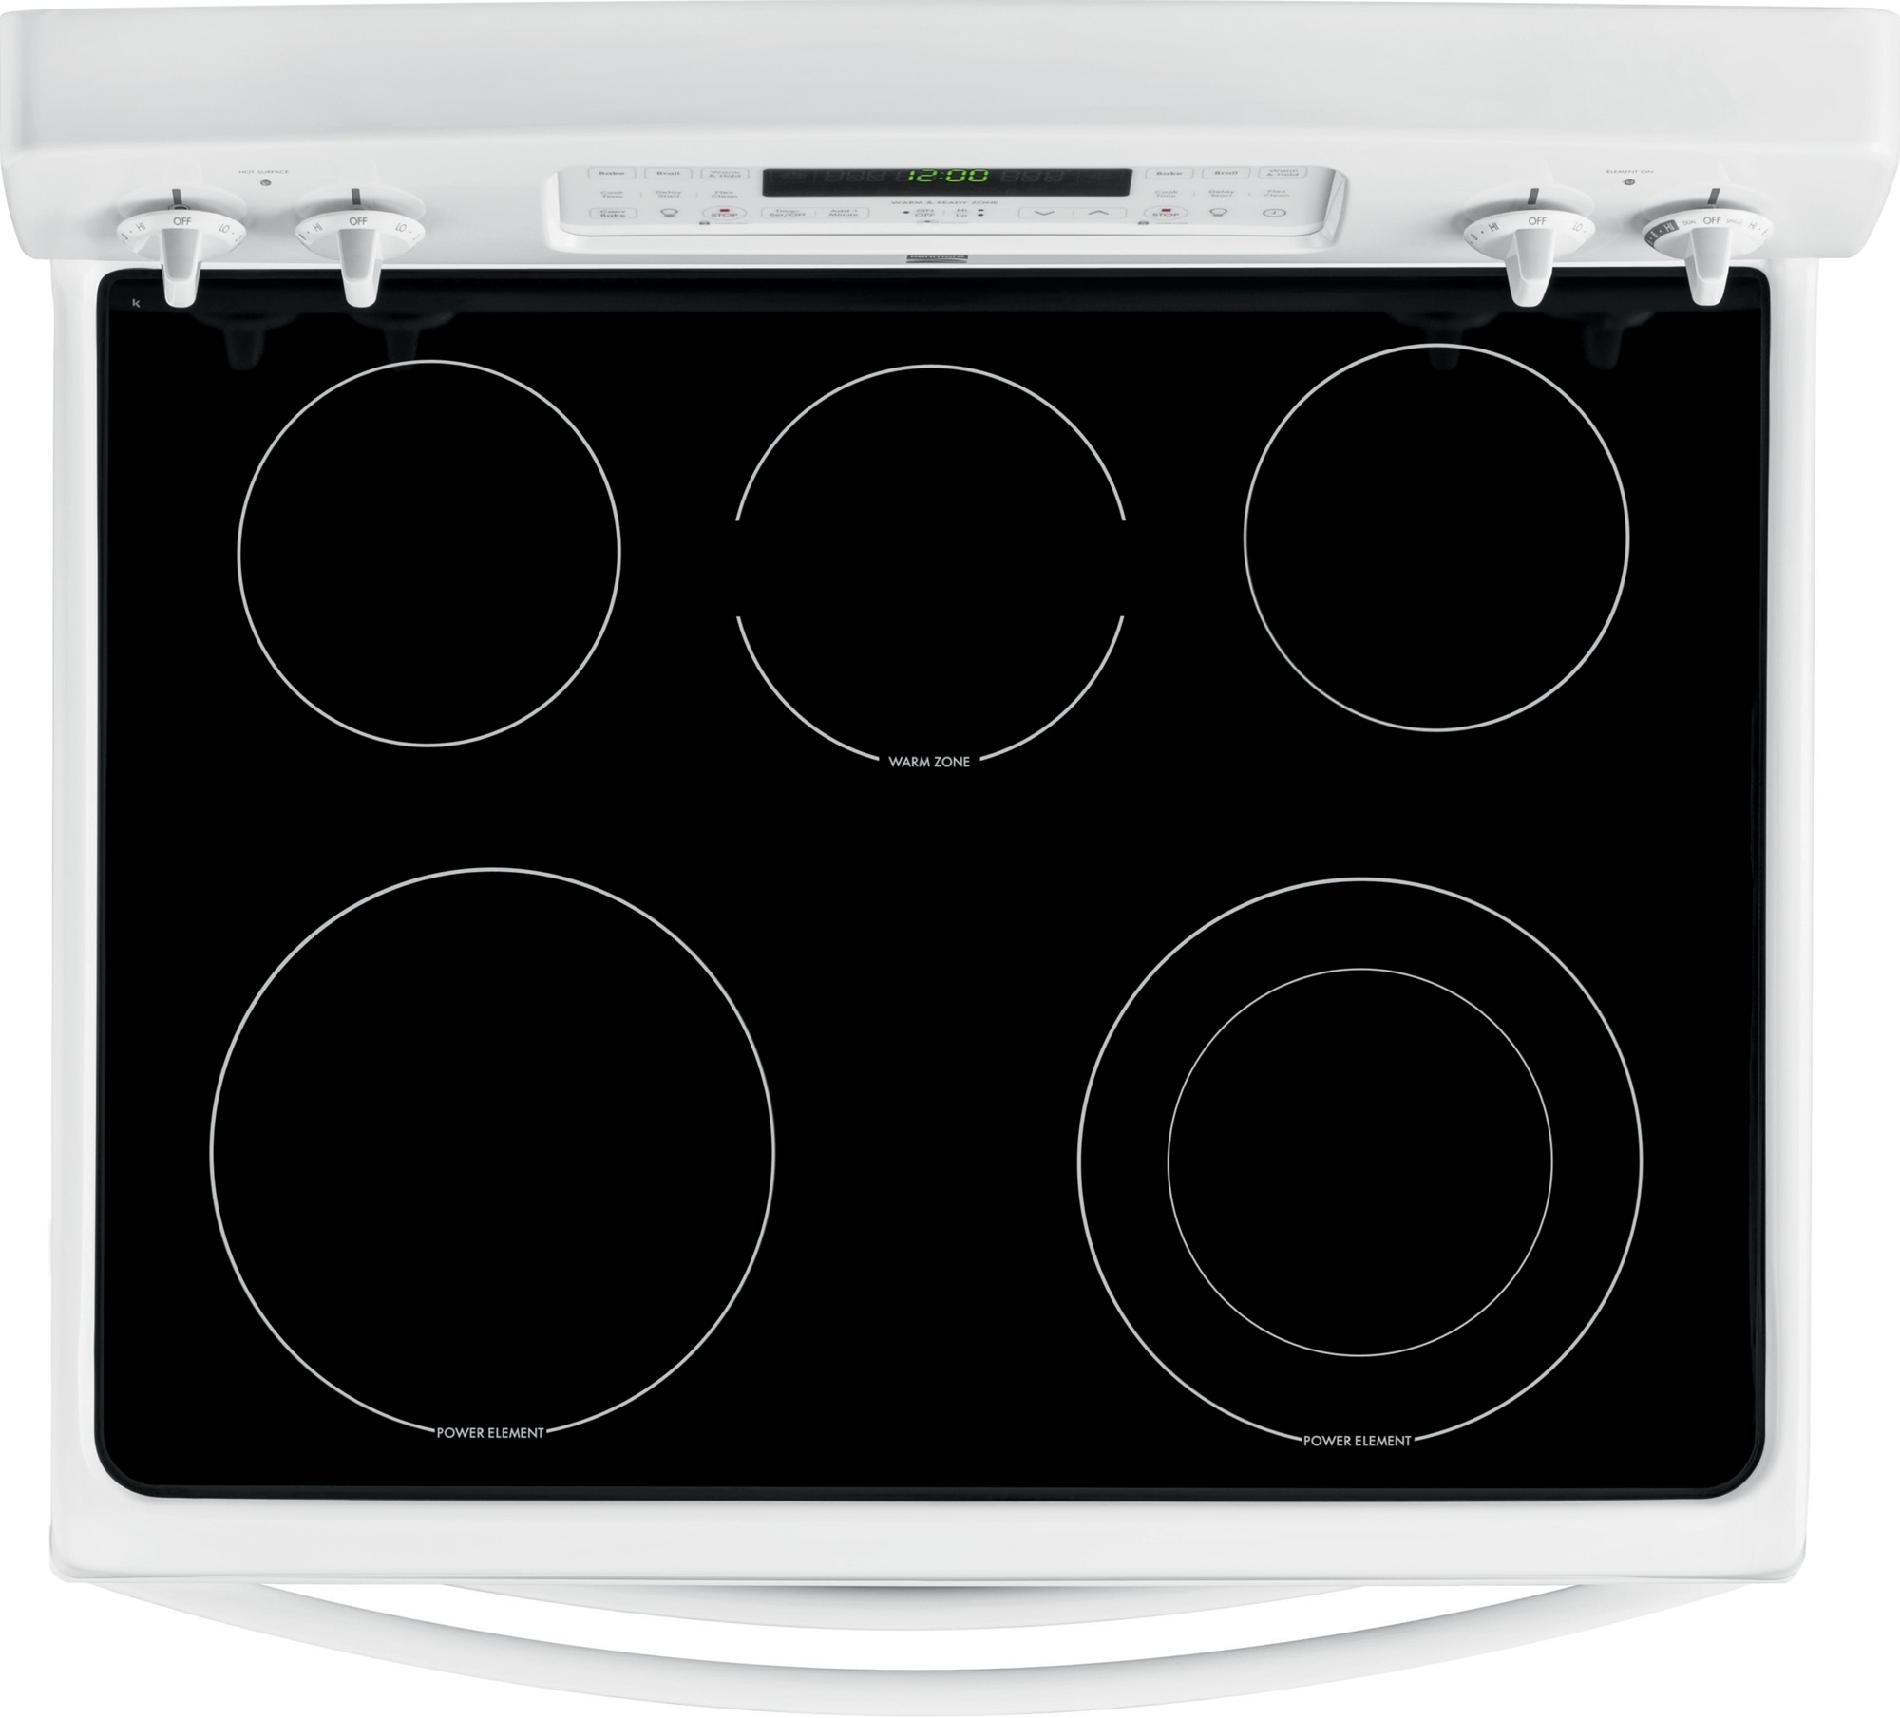 Kenmore 7.0 cu. ft. Double-Oven Electric Range w/ Convection - White